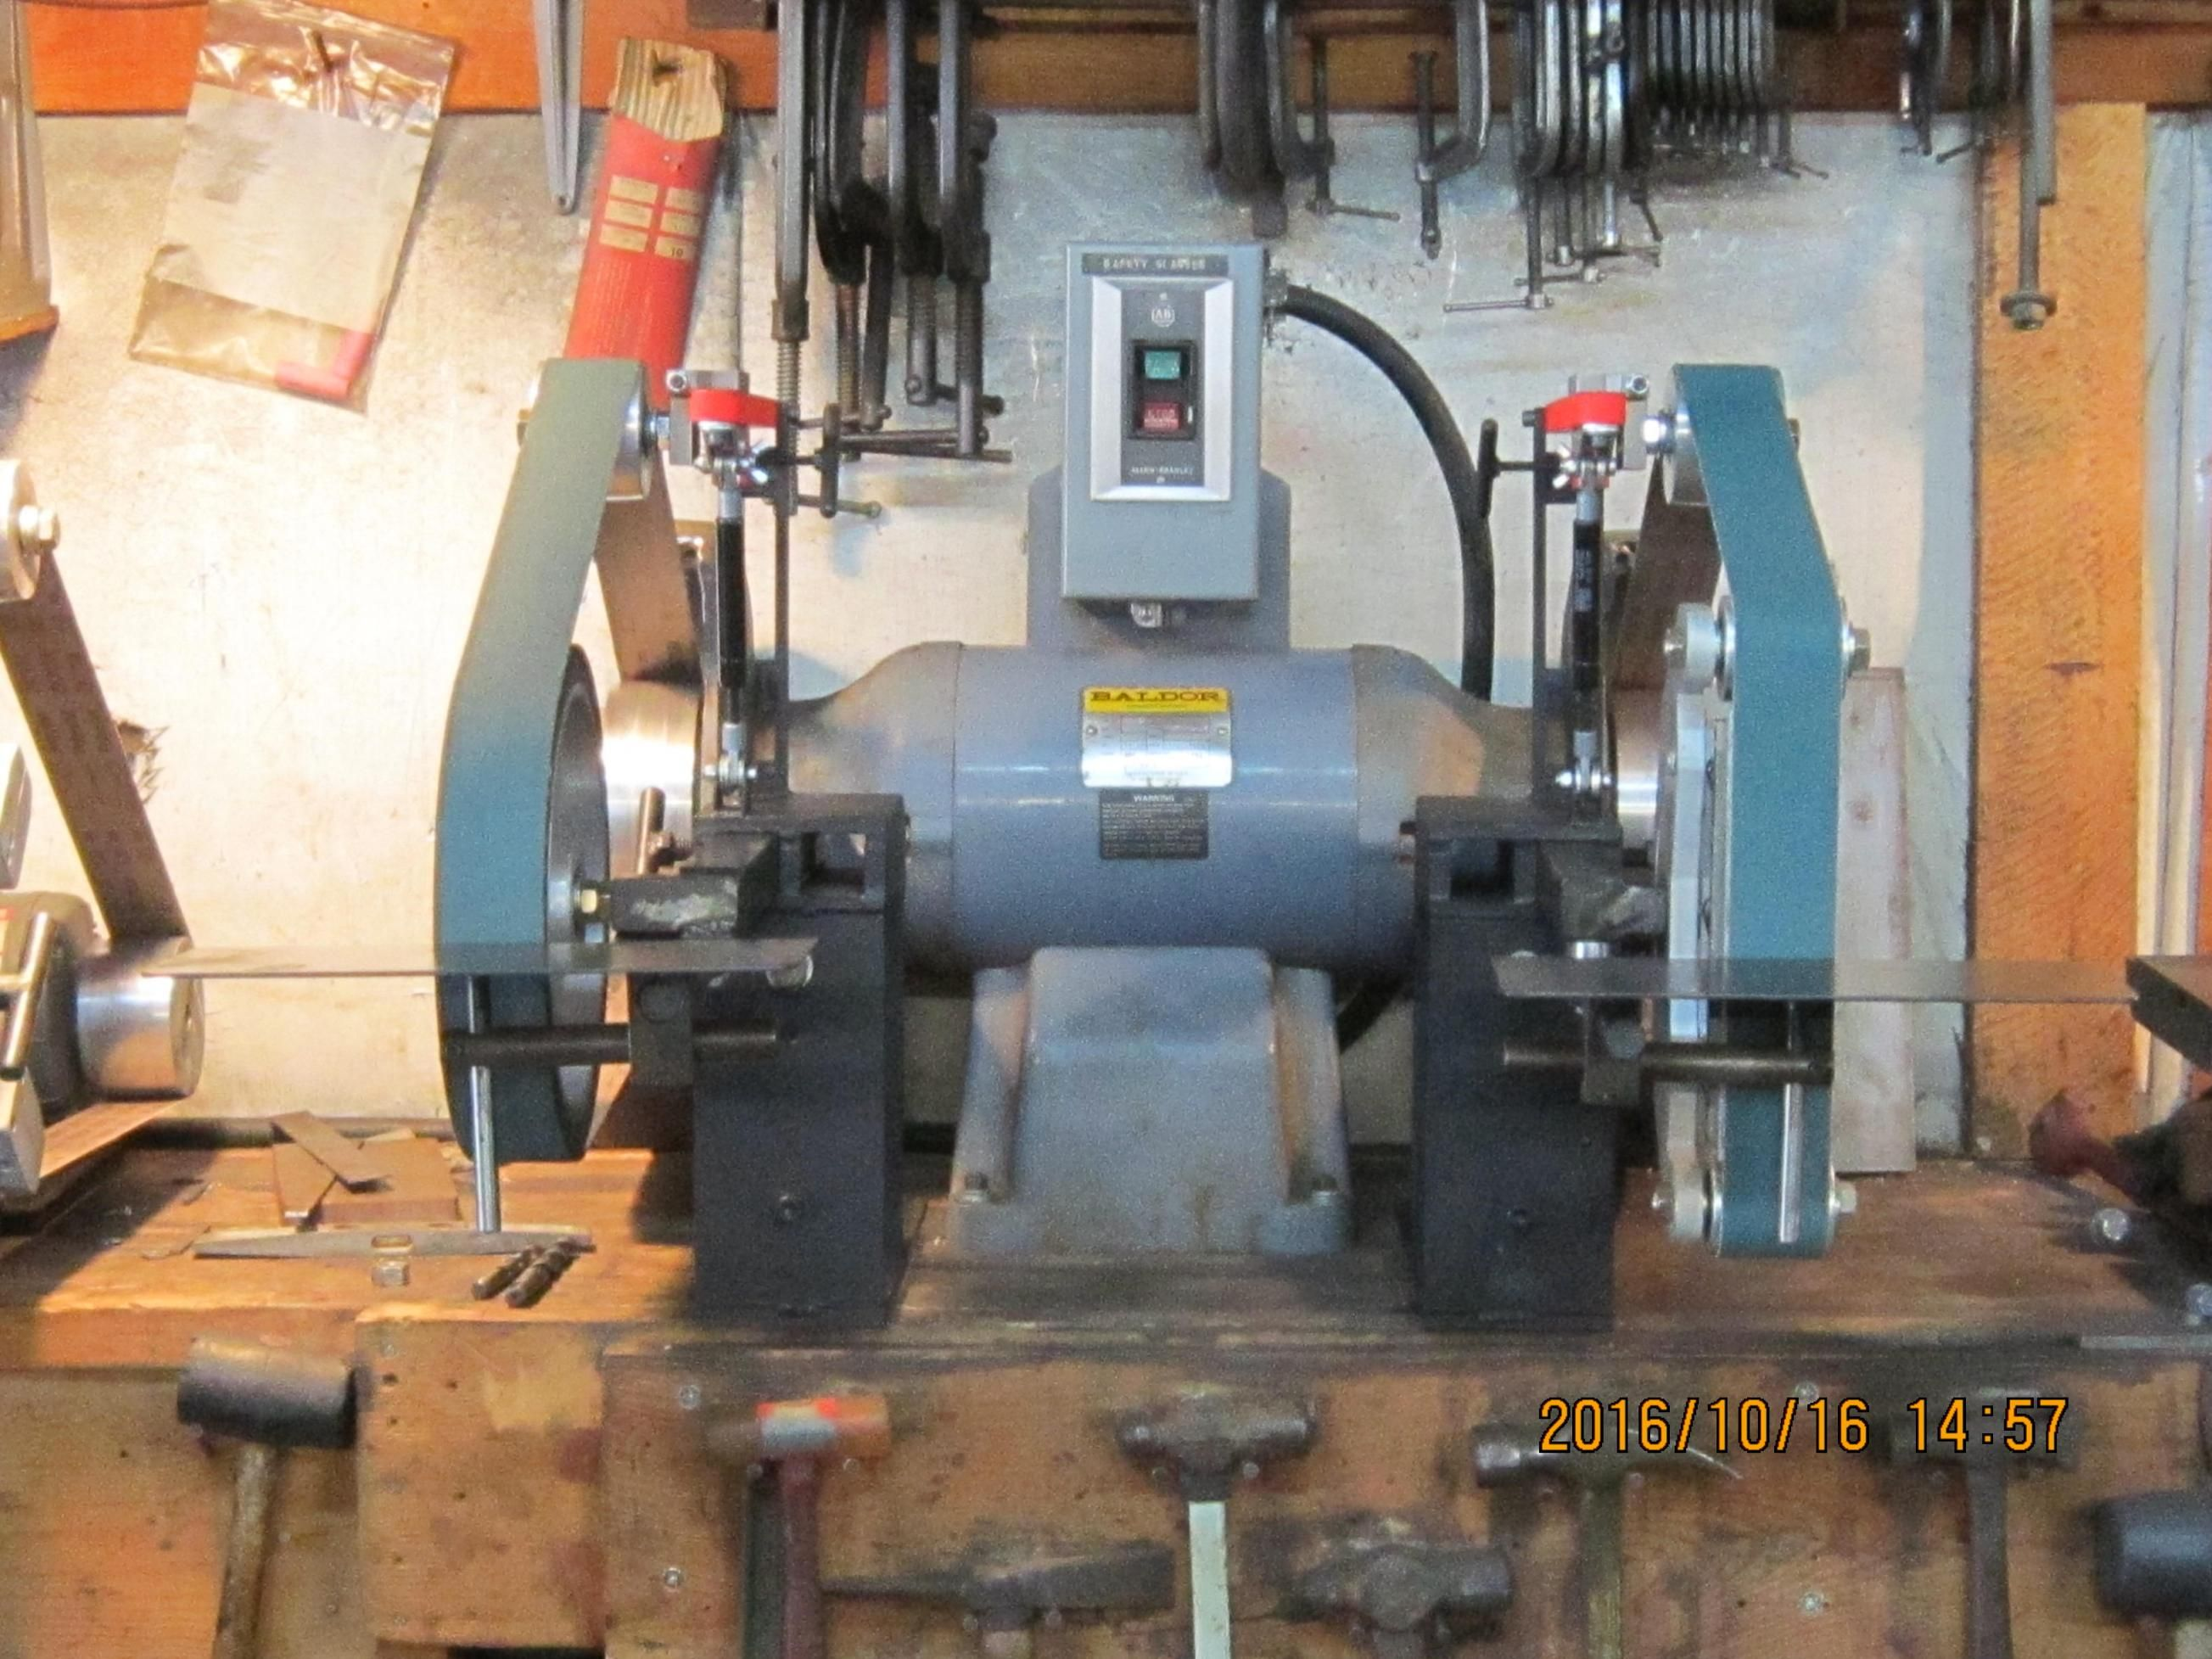 2 X 72 Double Belt Grinder Sander By Garycullen Wip Finally Got My Baldor 3 H P Double Grinder Al Belt Grinder Belt Grinder Plans 2x72 Belt Grinder Plans